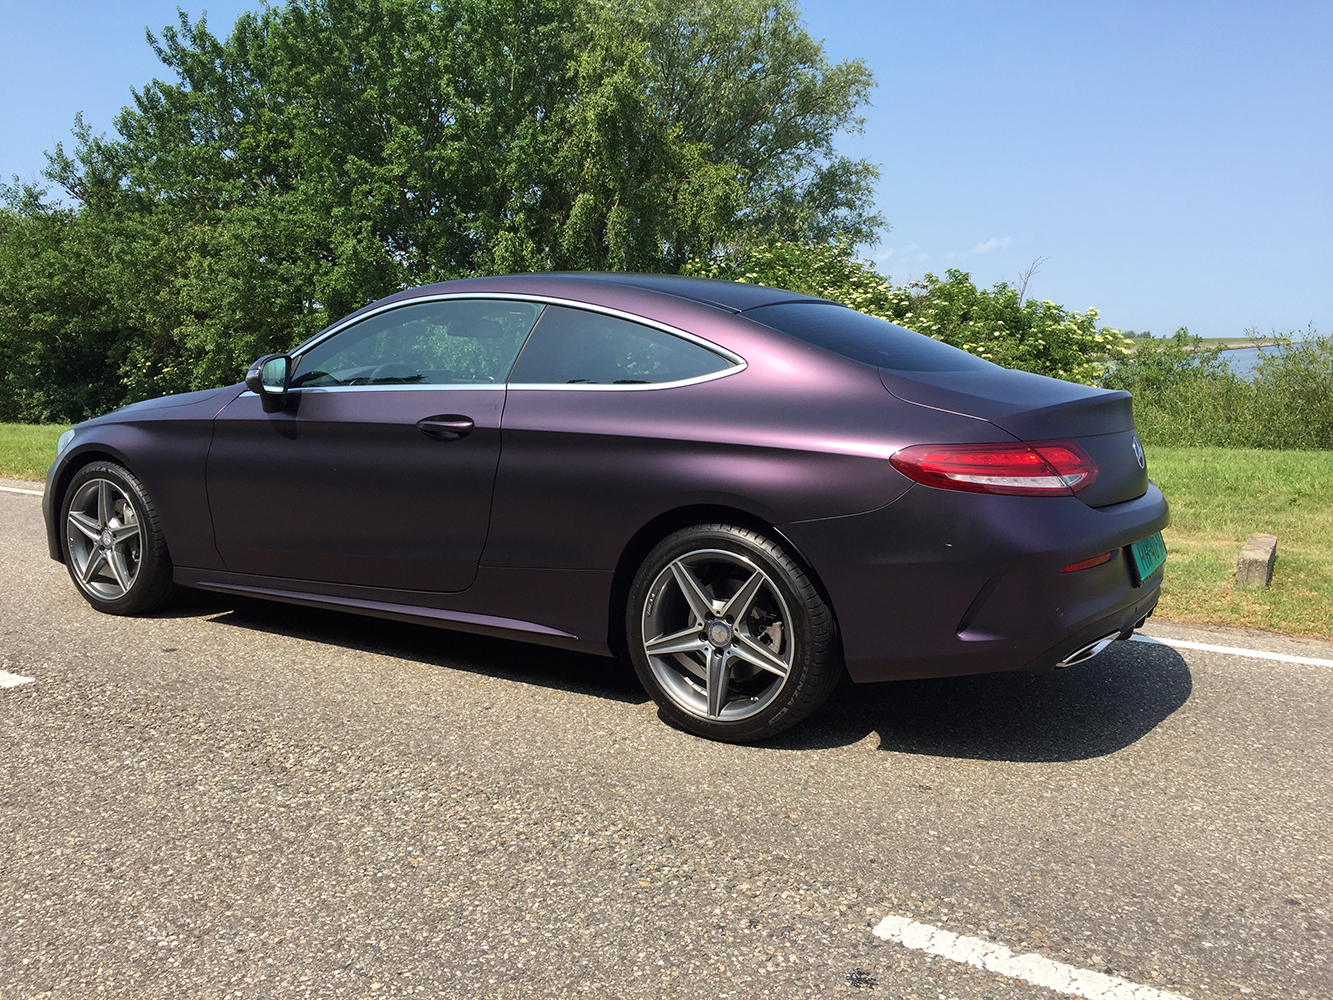 Mercedes C Coupe Wrap Mat Paars Matt Midnight Purple Metallic-12